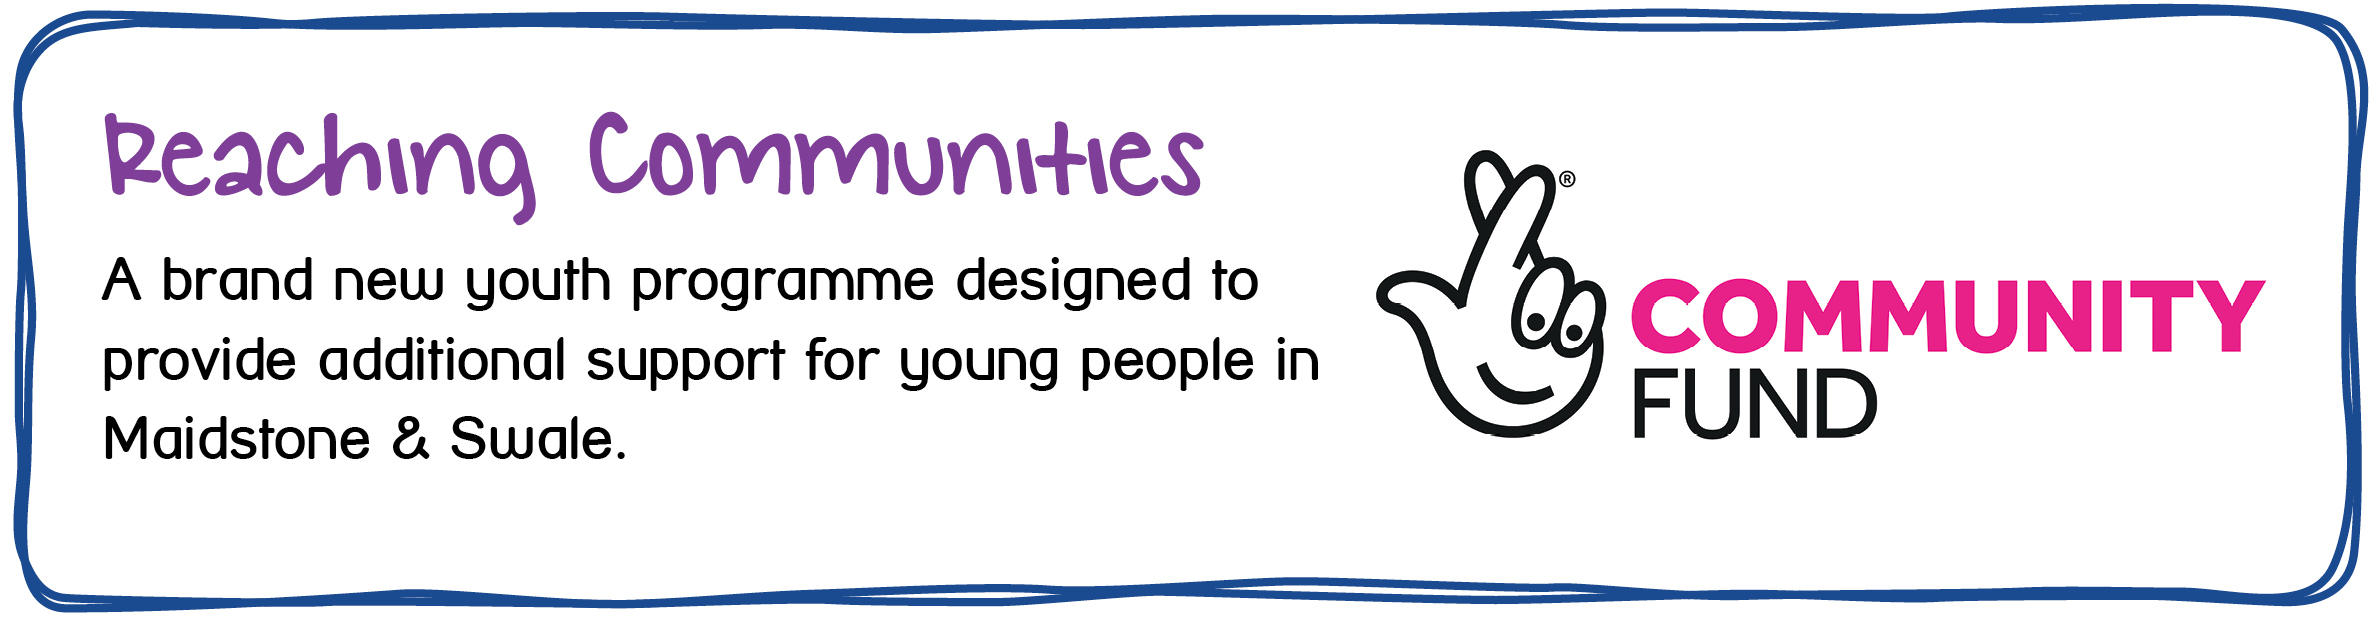 Reaching Communities - Youth Support In Maidstone & Swale - A brand new youth programme designed to provide additional support for young people in Maidstone & Swale.